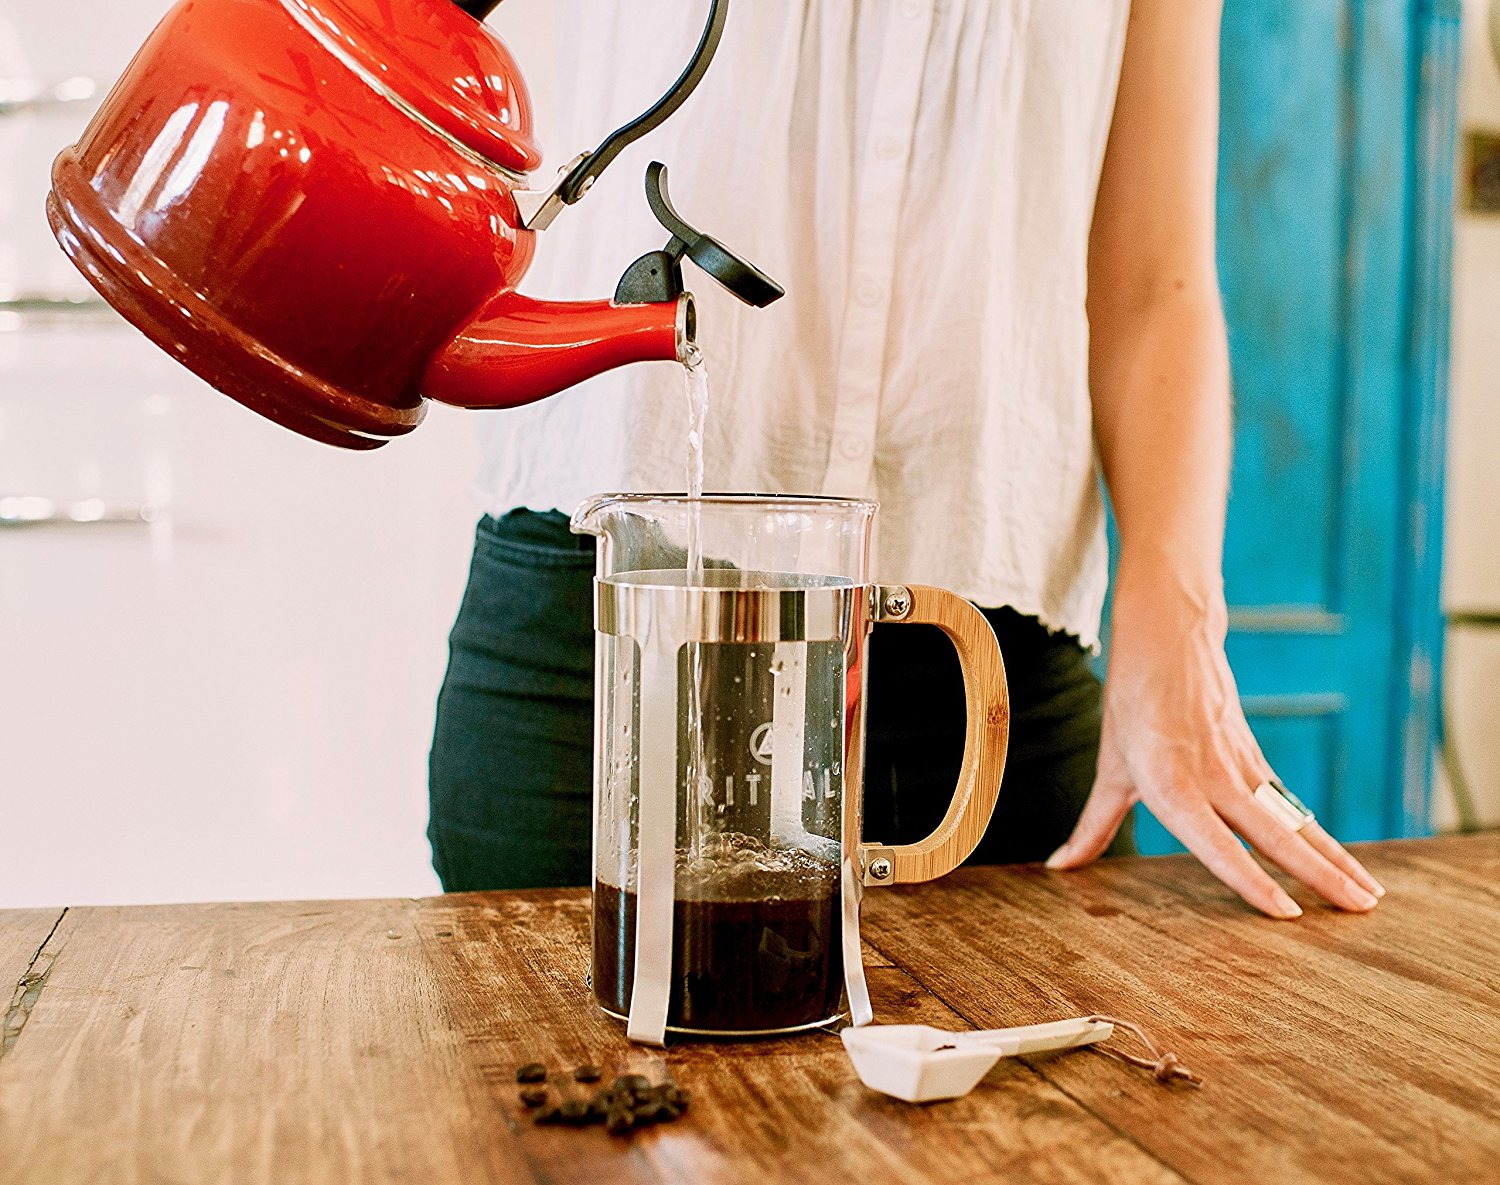 7 Of The Best French Press Coffee Makers Money Can Buy Buydont